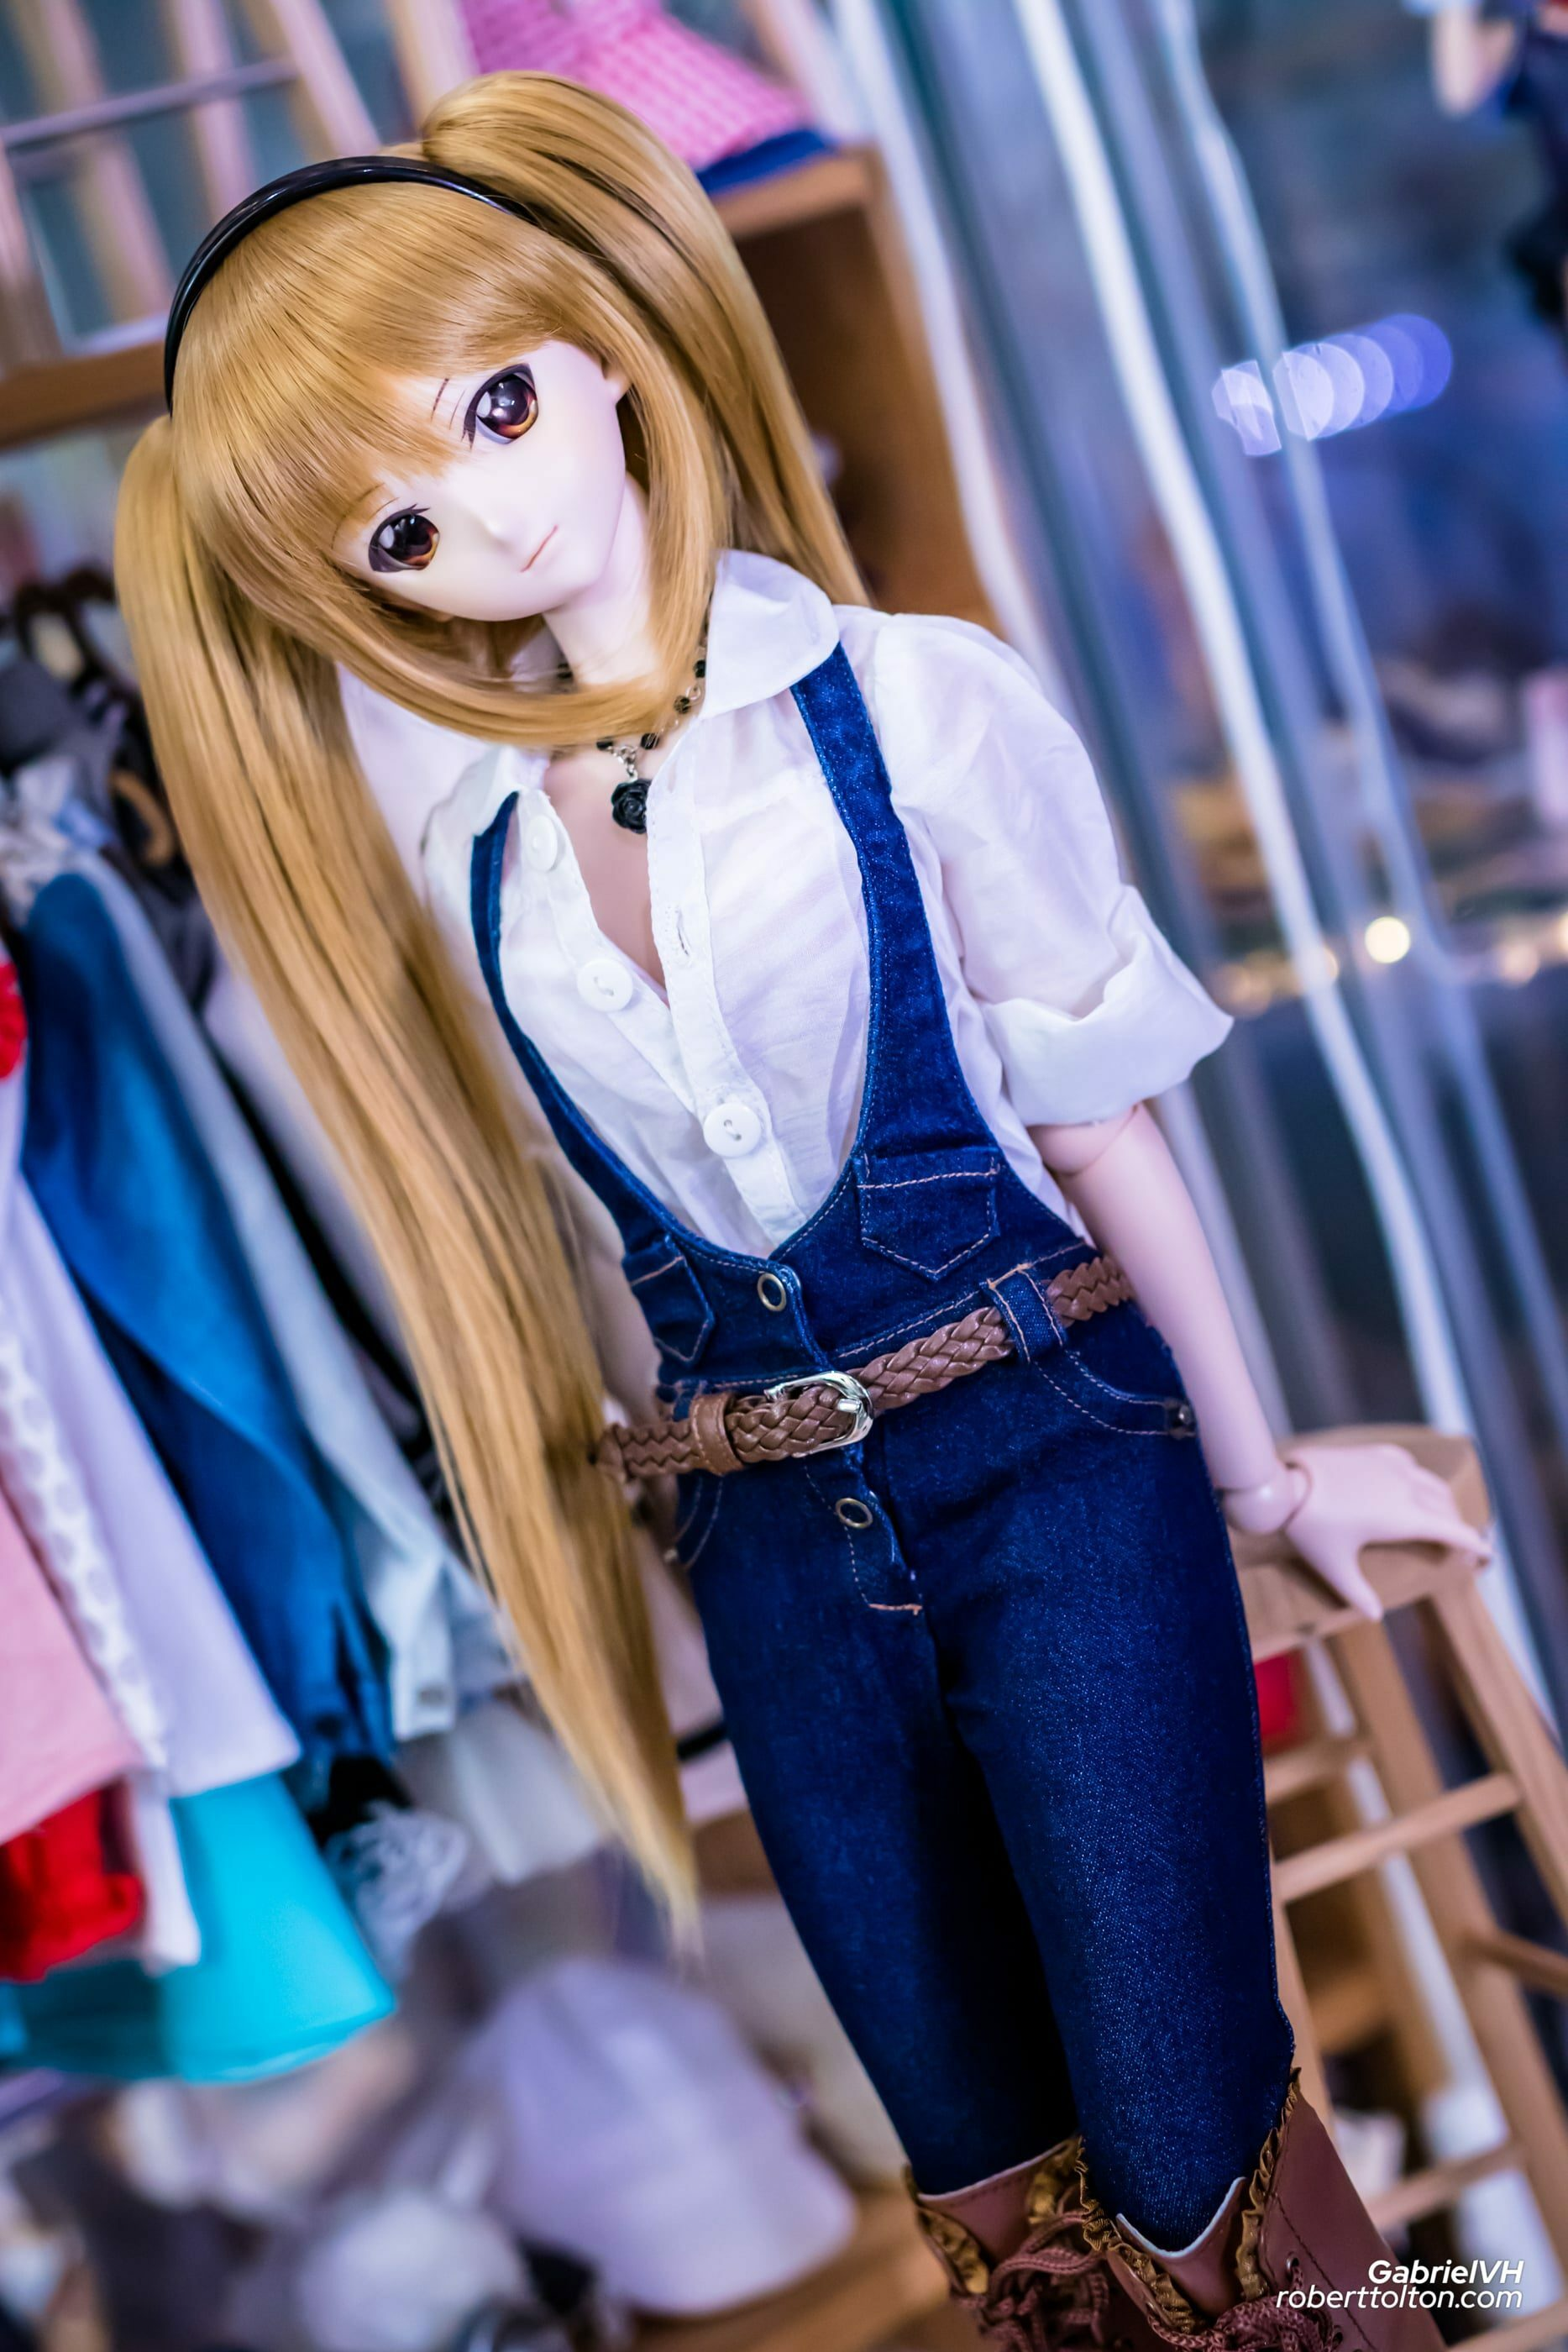 Saber Lily Country Girl 4